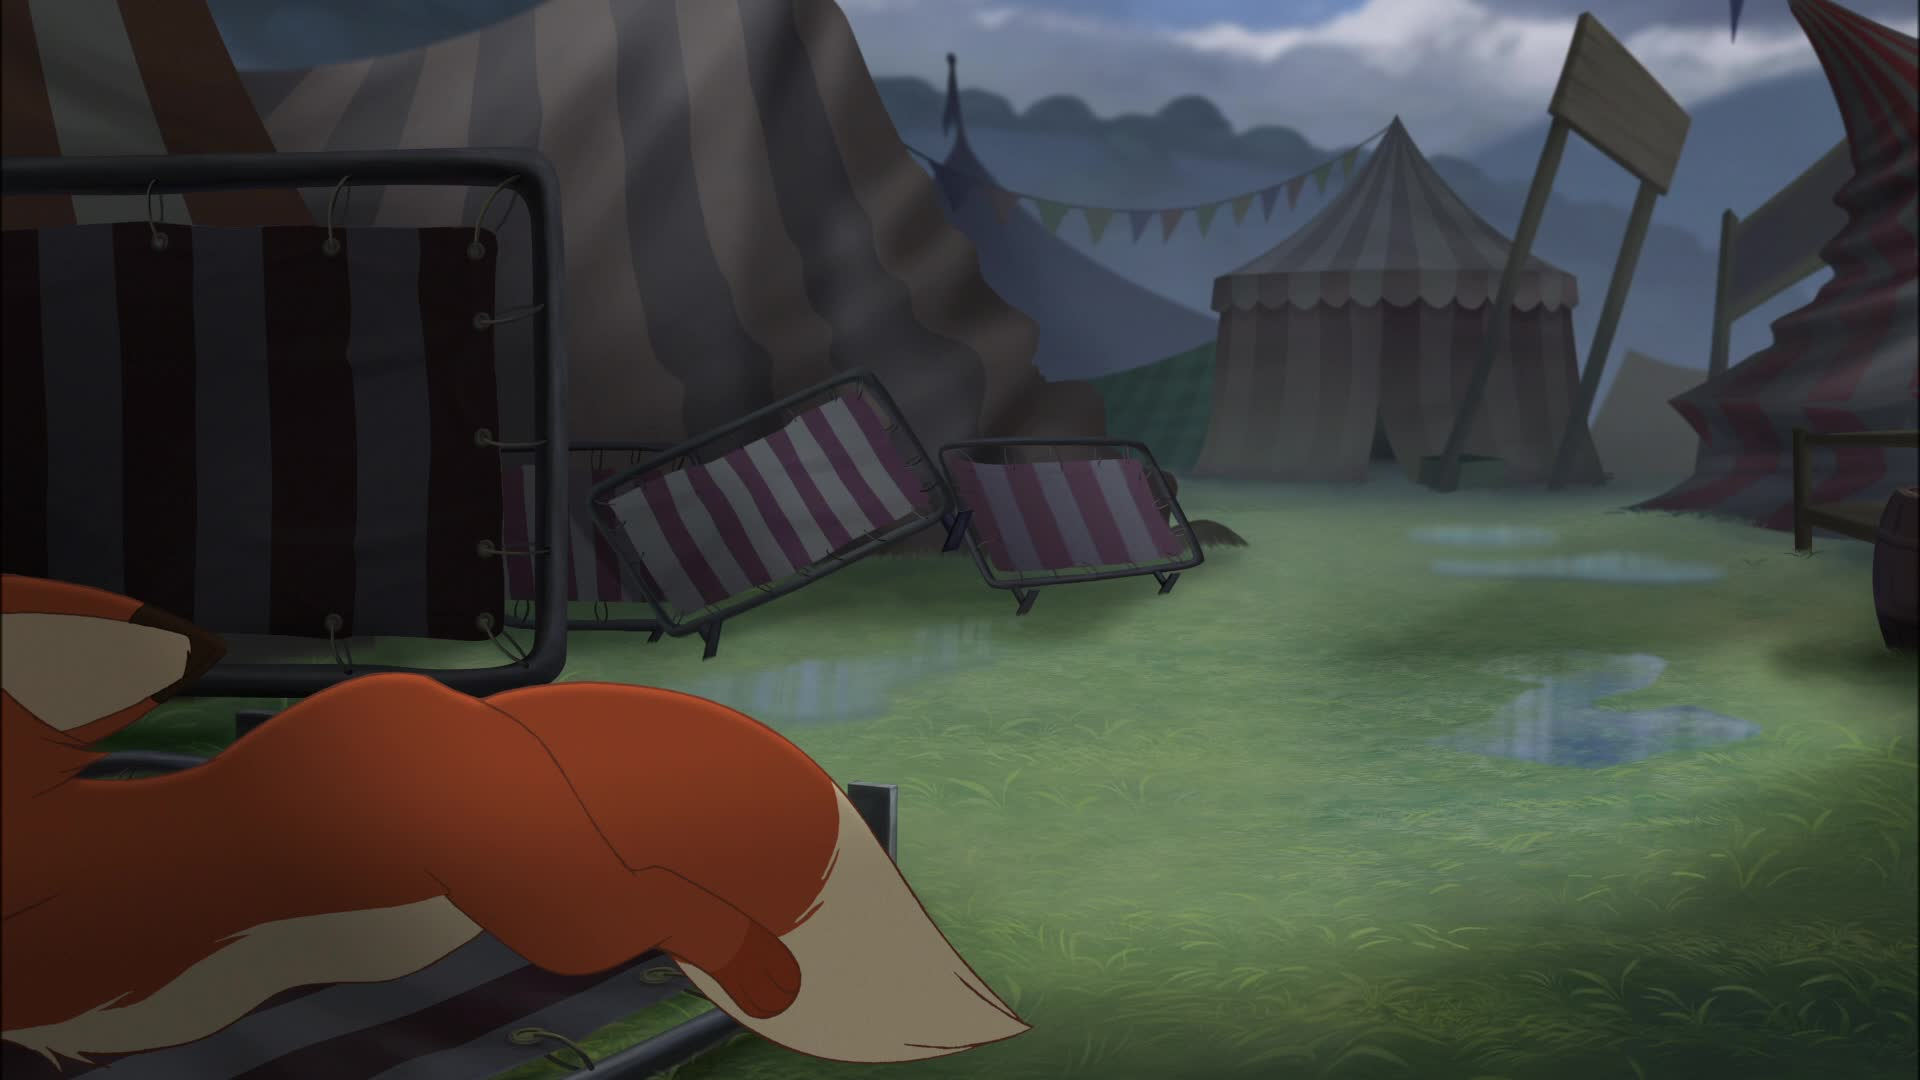 the gallery for gt the fox and the hound badger